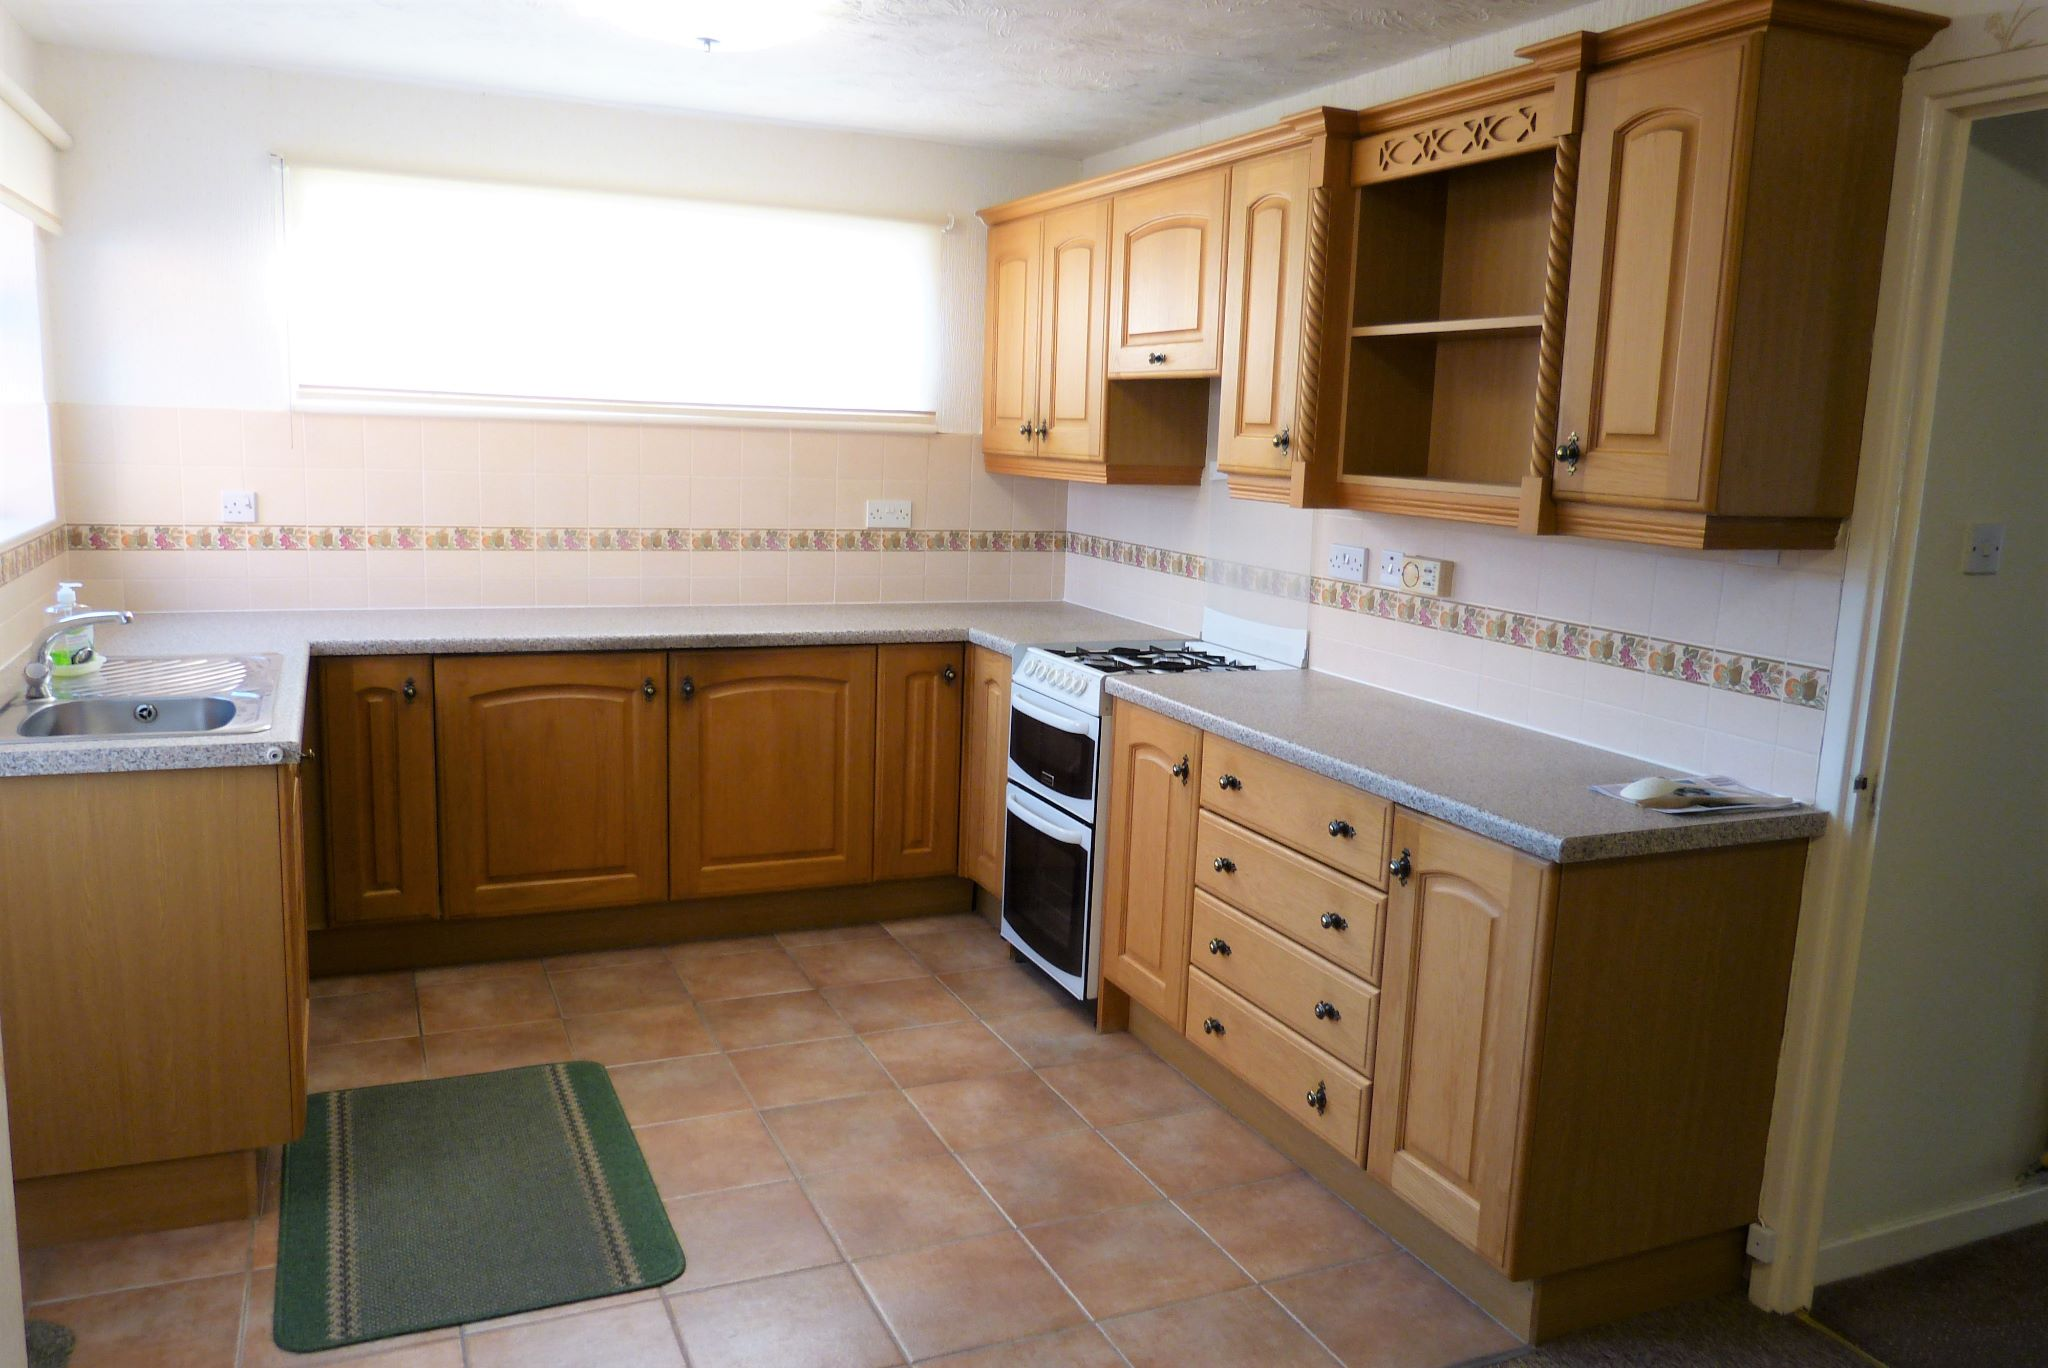 3 bedroom detached bungalow SSTC in Abergele - Photograph 2